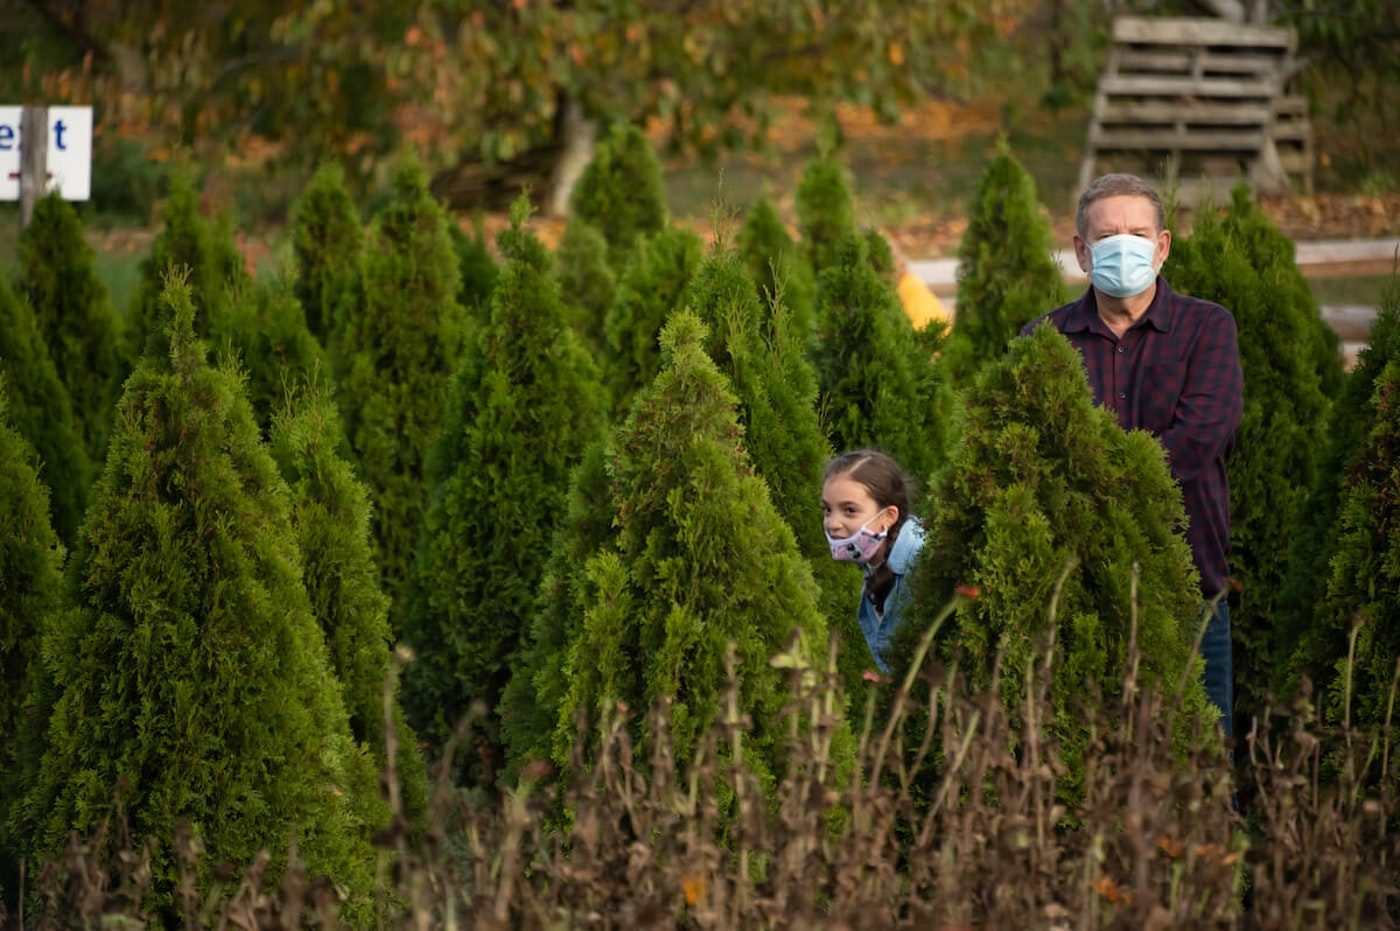 People wear face masks while walking between Christmas trees at Alstede Farms on October 24, 2020 in Chester Township, New Jersey. Many Halloween events have been canceled or adjusted with additional safety measures due to the ongoing coronavirus (COVID-19) pandemic. (Photo by Noam Galai/Getty Images)